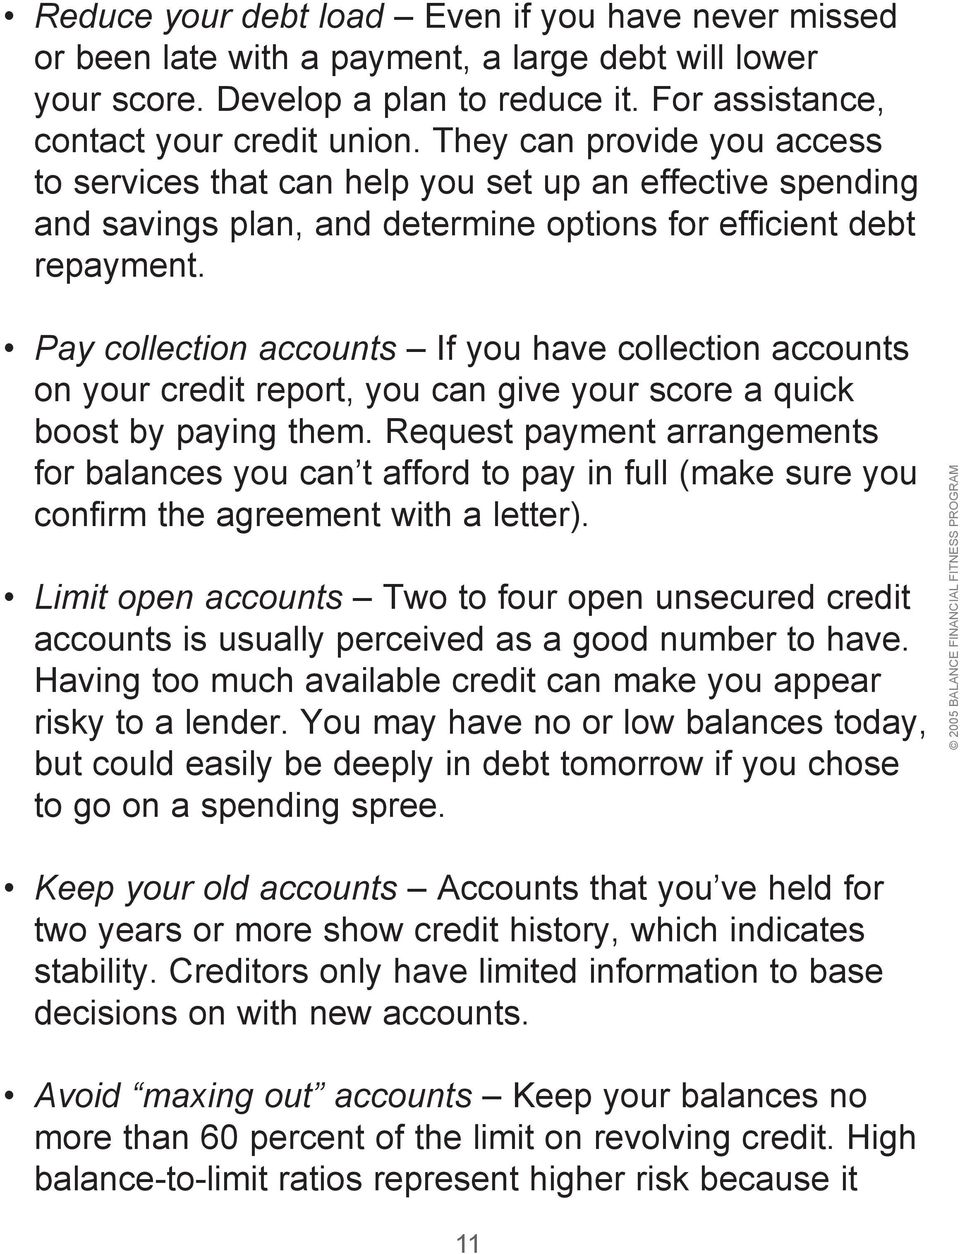 Pay collection accounts If you have collection accounts on your credit report, you can give your score a quick boost by paying them.